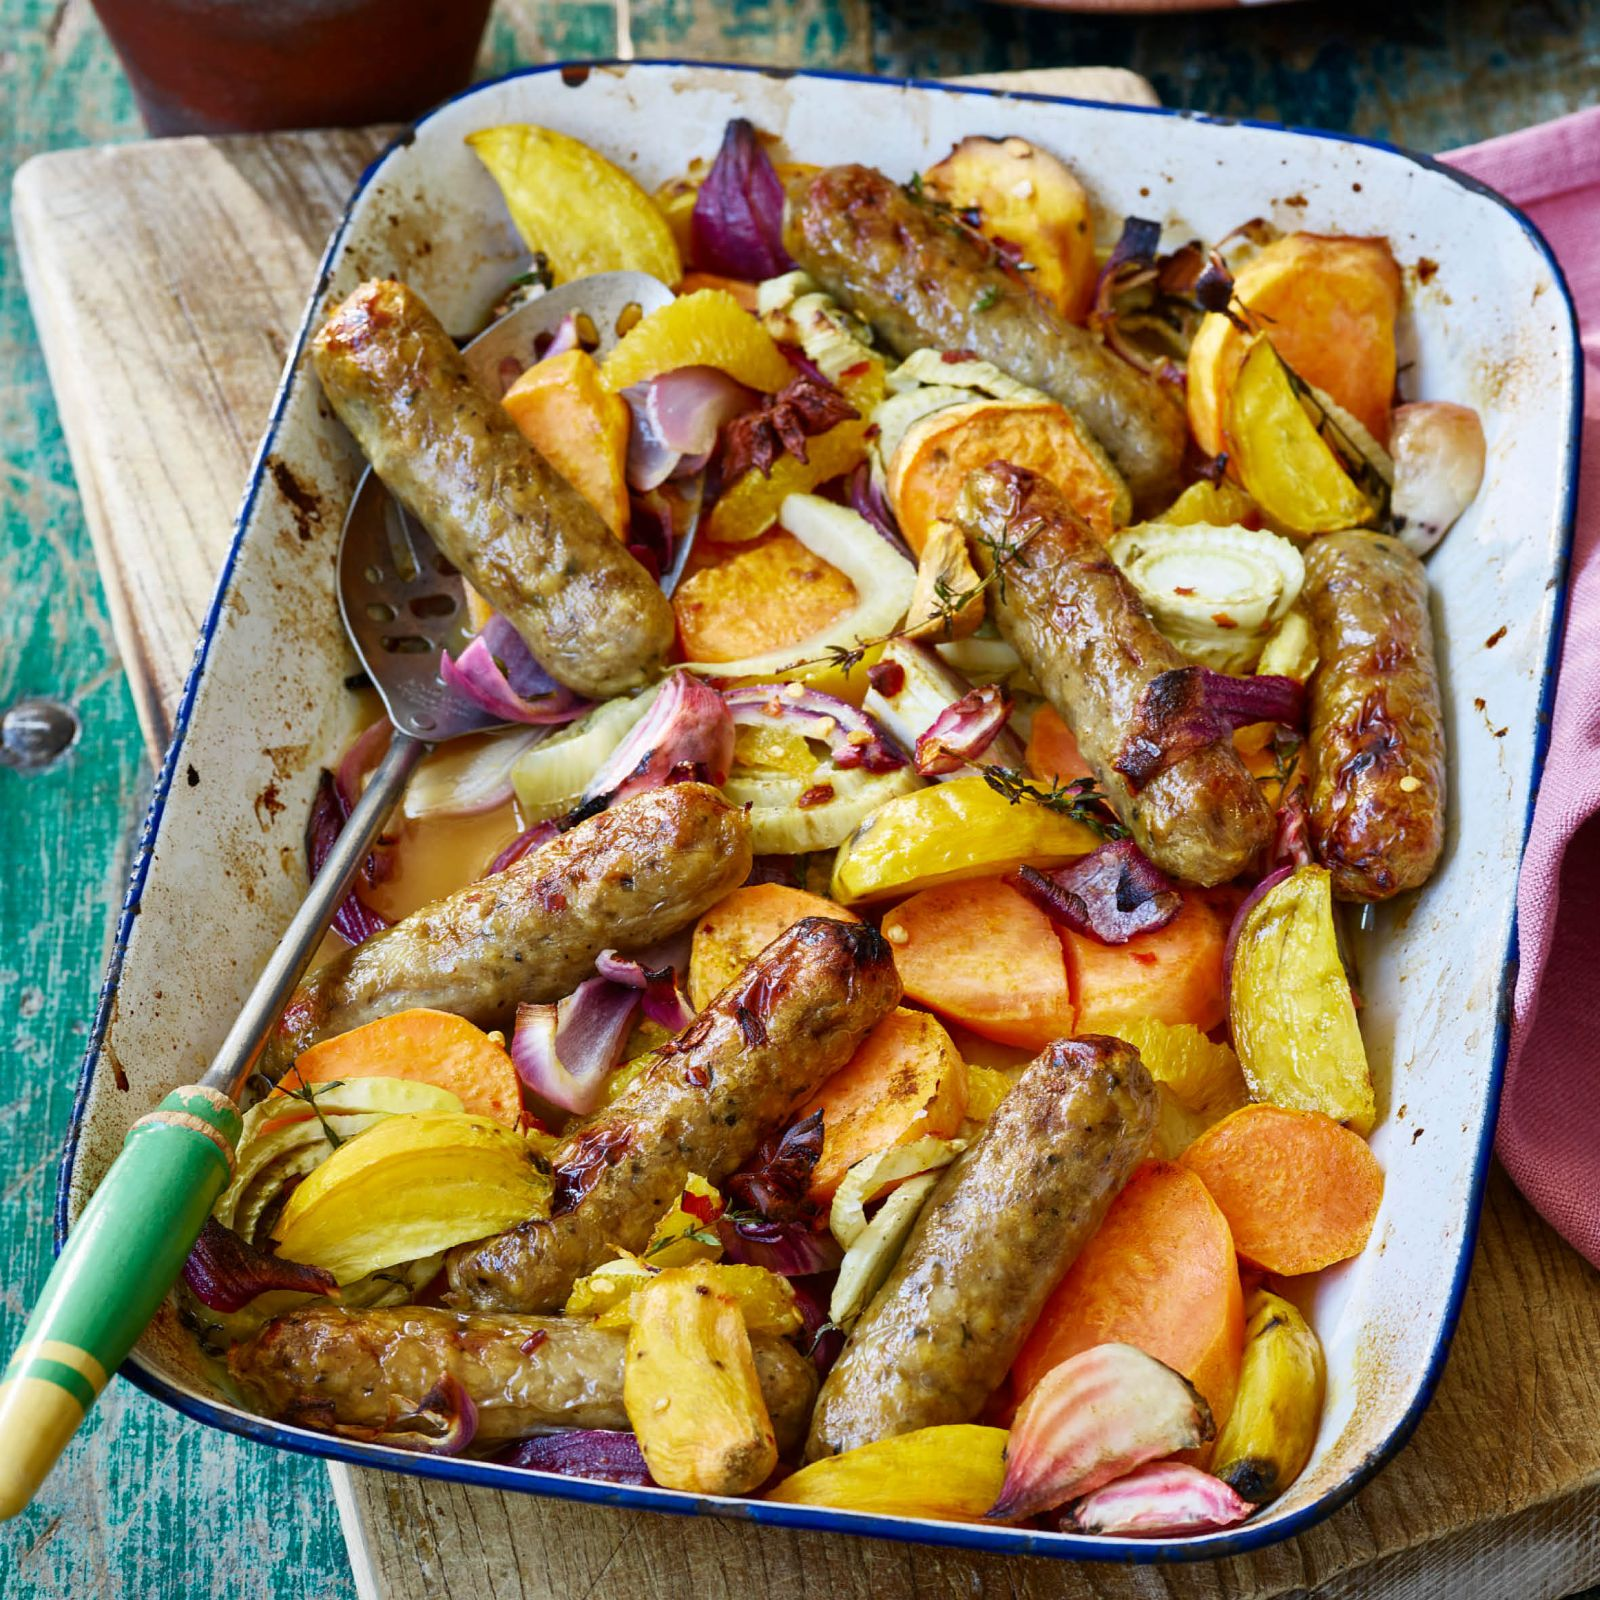 Baked_Marmalade_Sausages_and_Veggies.jpg